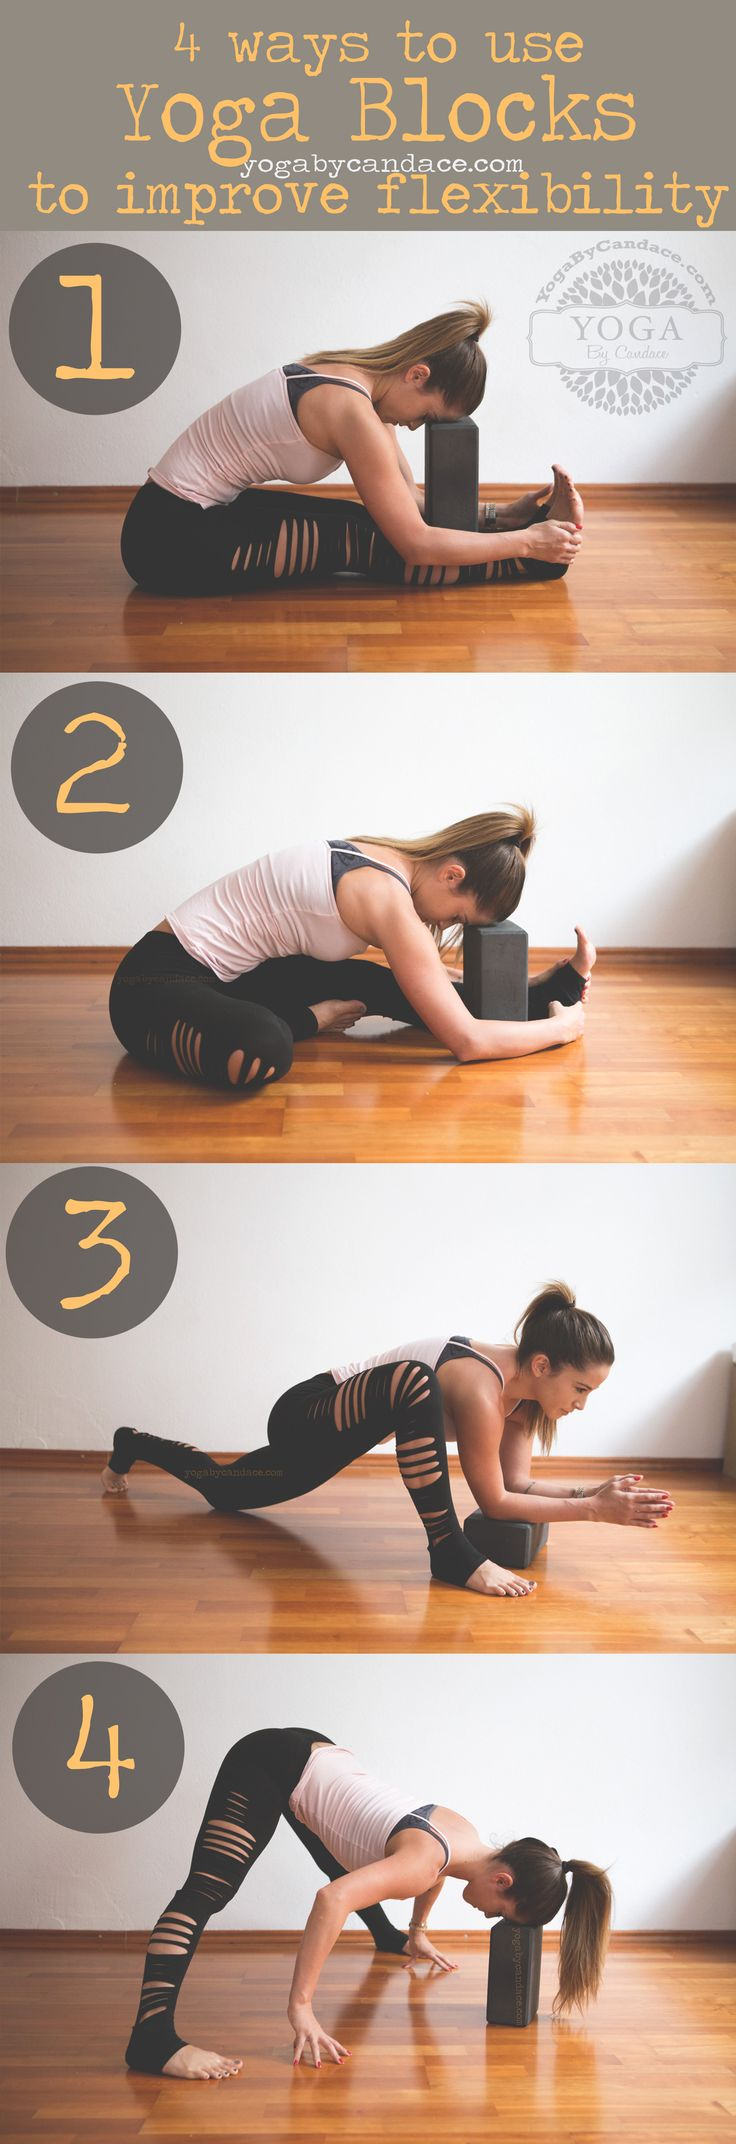 Pin now, practice later! 4 ways to use yoga blocks to improve your flexibility Wearing: Jala pants c/o, f21 tank, Big apple red polish on fingers, you don't know jacques on toes